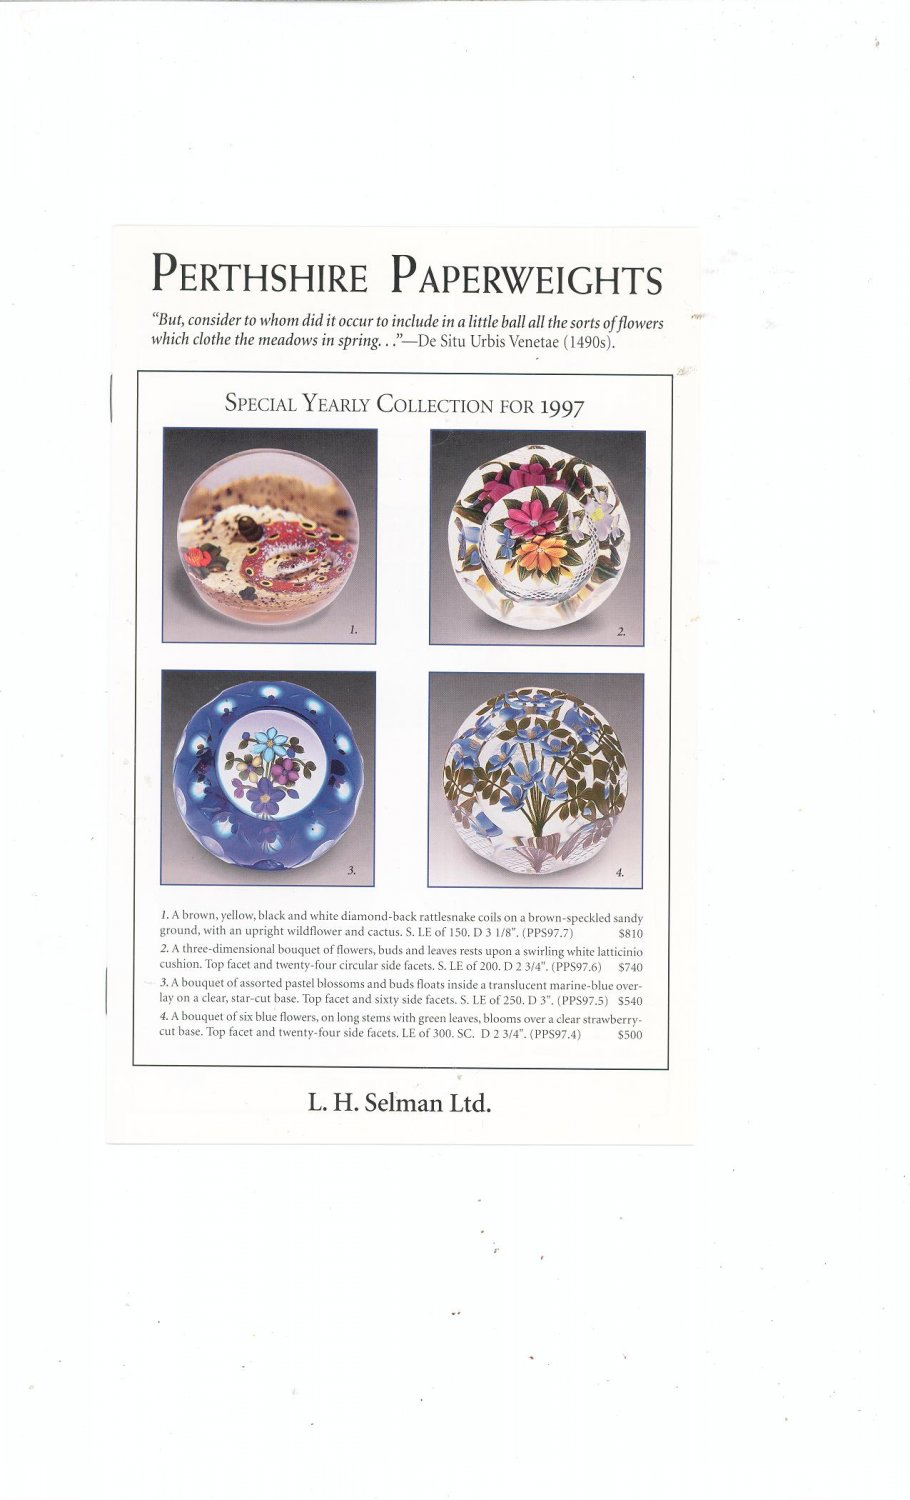 Perthshire Paperweights Special Yearly Collection For 1997 Catalog / Brochure by L. H. Selman Ltd.